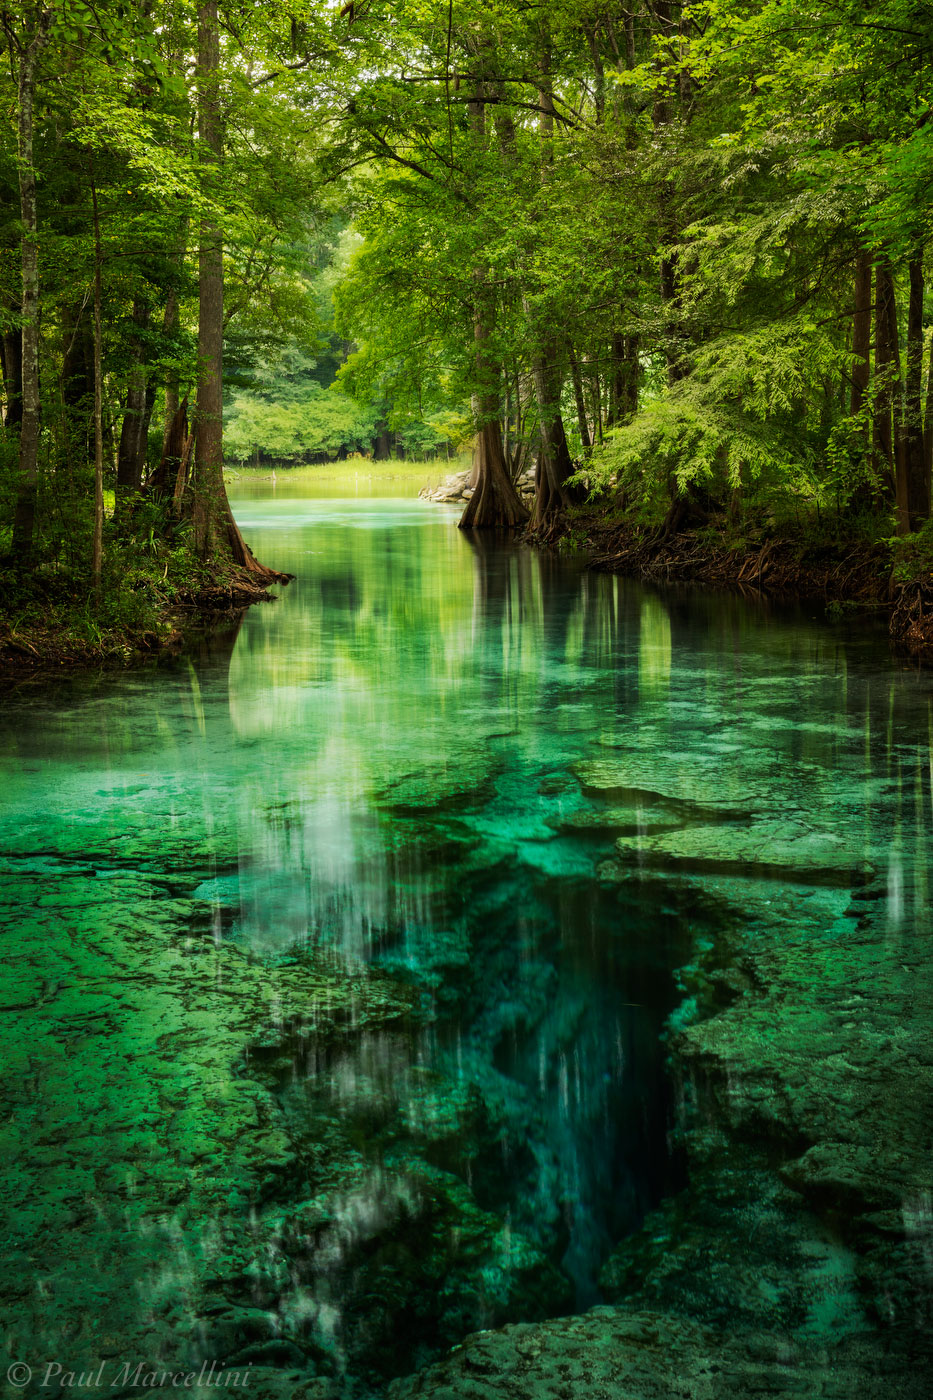 little devil spring, santa fe river, north florida, florida, spring, nature, photography, photo